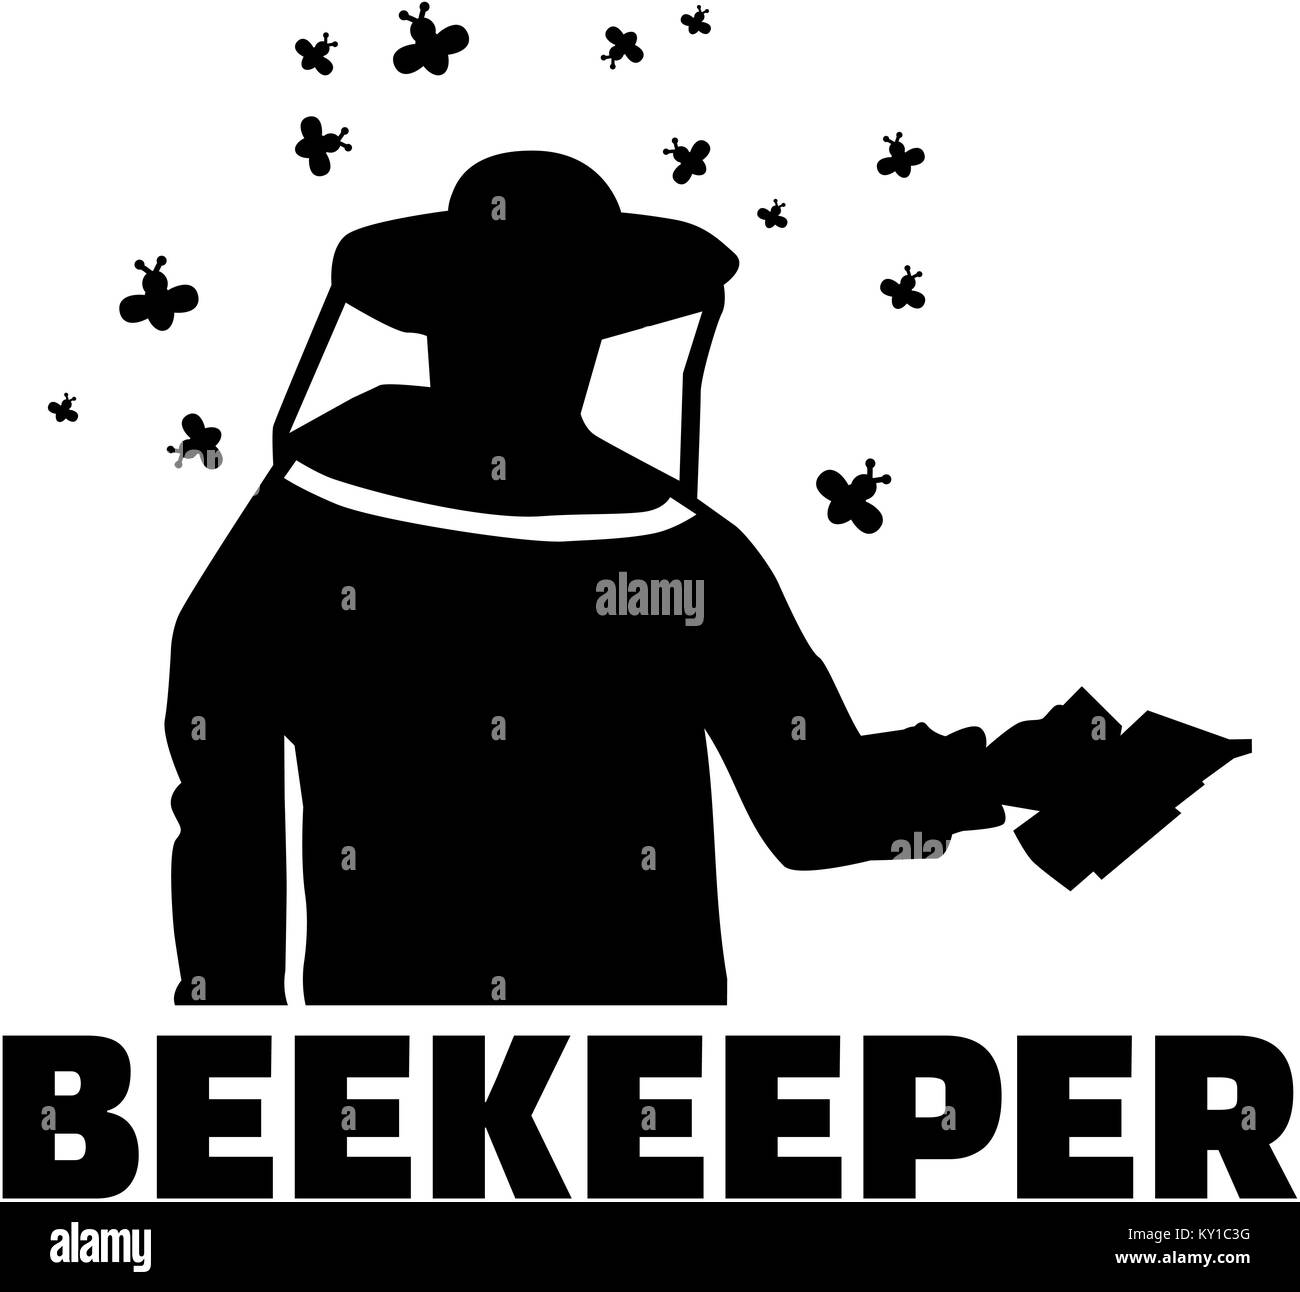 Beekeepter silhouette with bee swarm, bee suit and job title - Stock Image